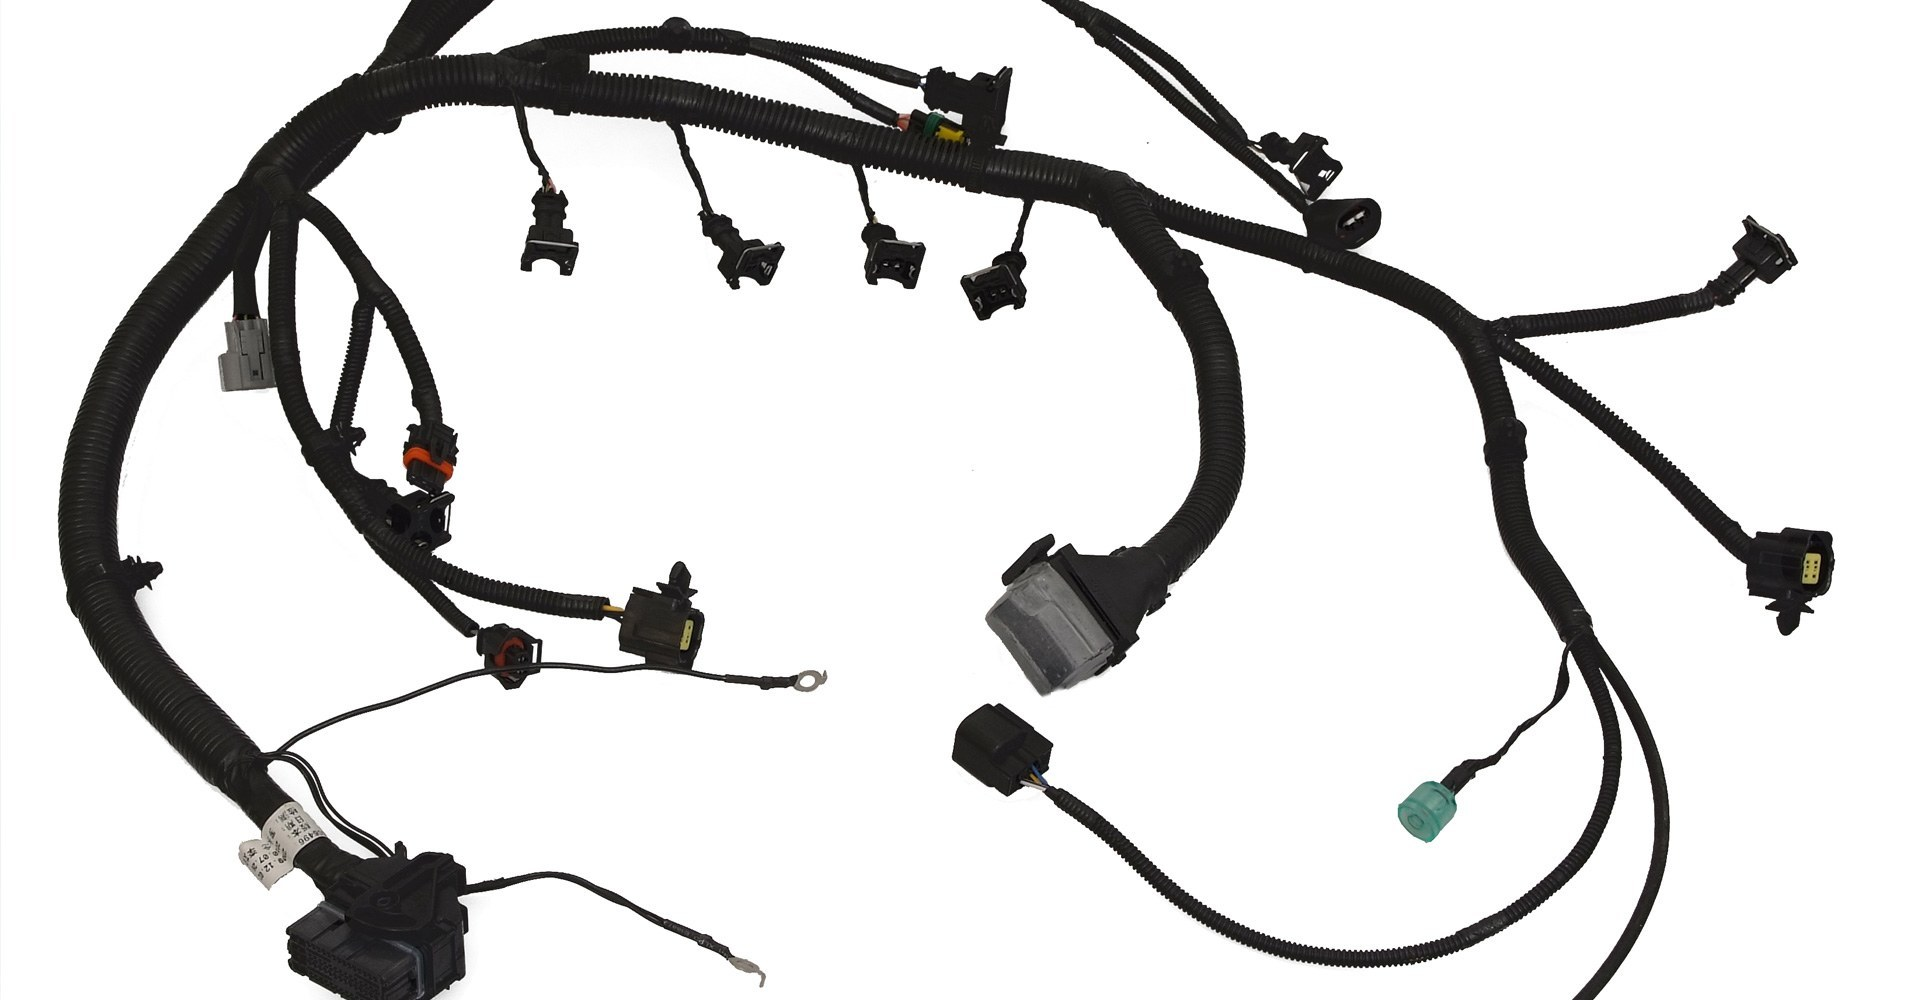 Automotive Wiring Harness Companies : Automotive lorom